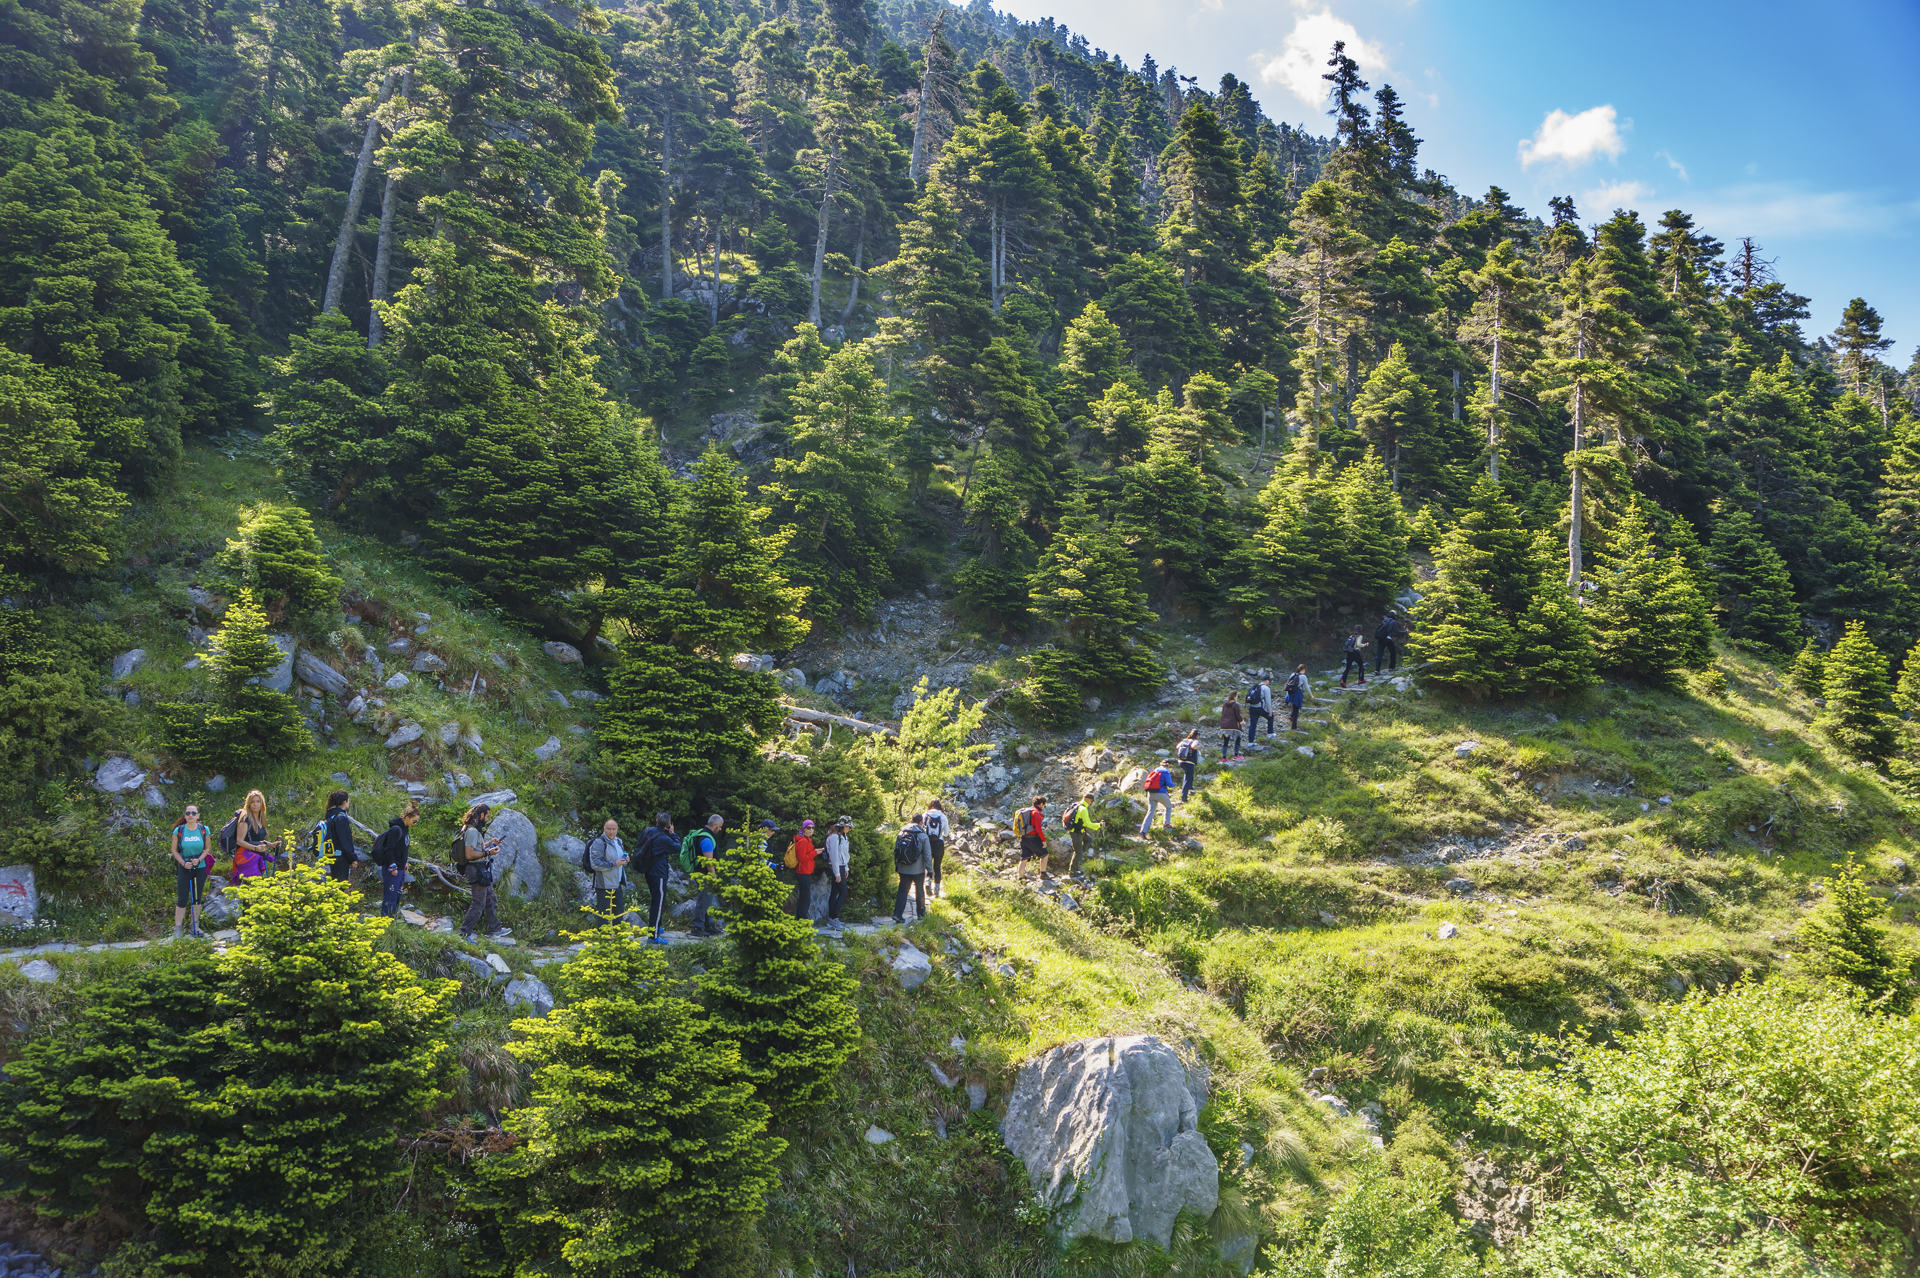 The famous Dirfys forest. It is a natural forest located on a mountain in the central part of the island of Euboea, Greece at 1,743 m elevation.The path leads to Agali Canyon.